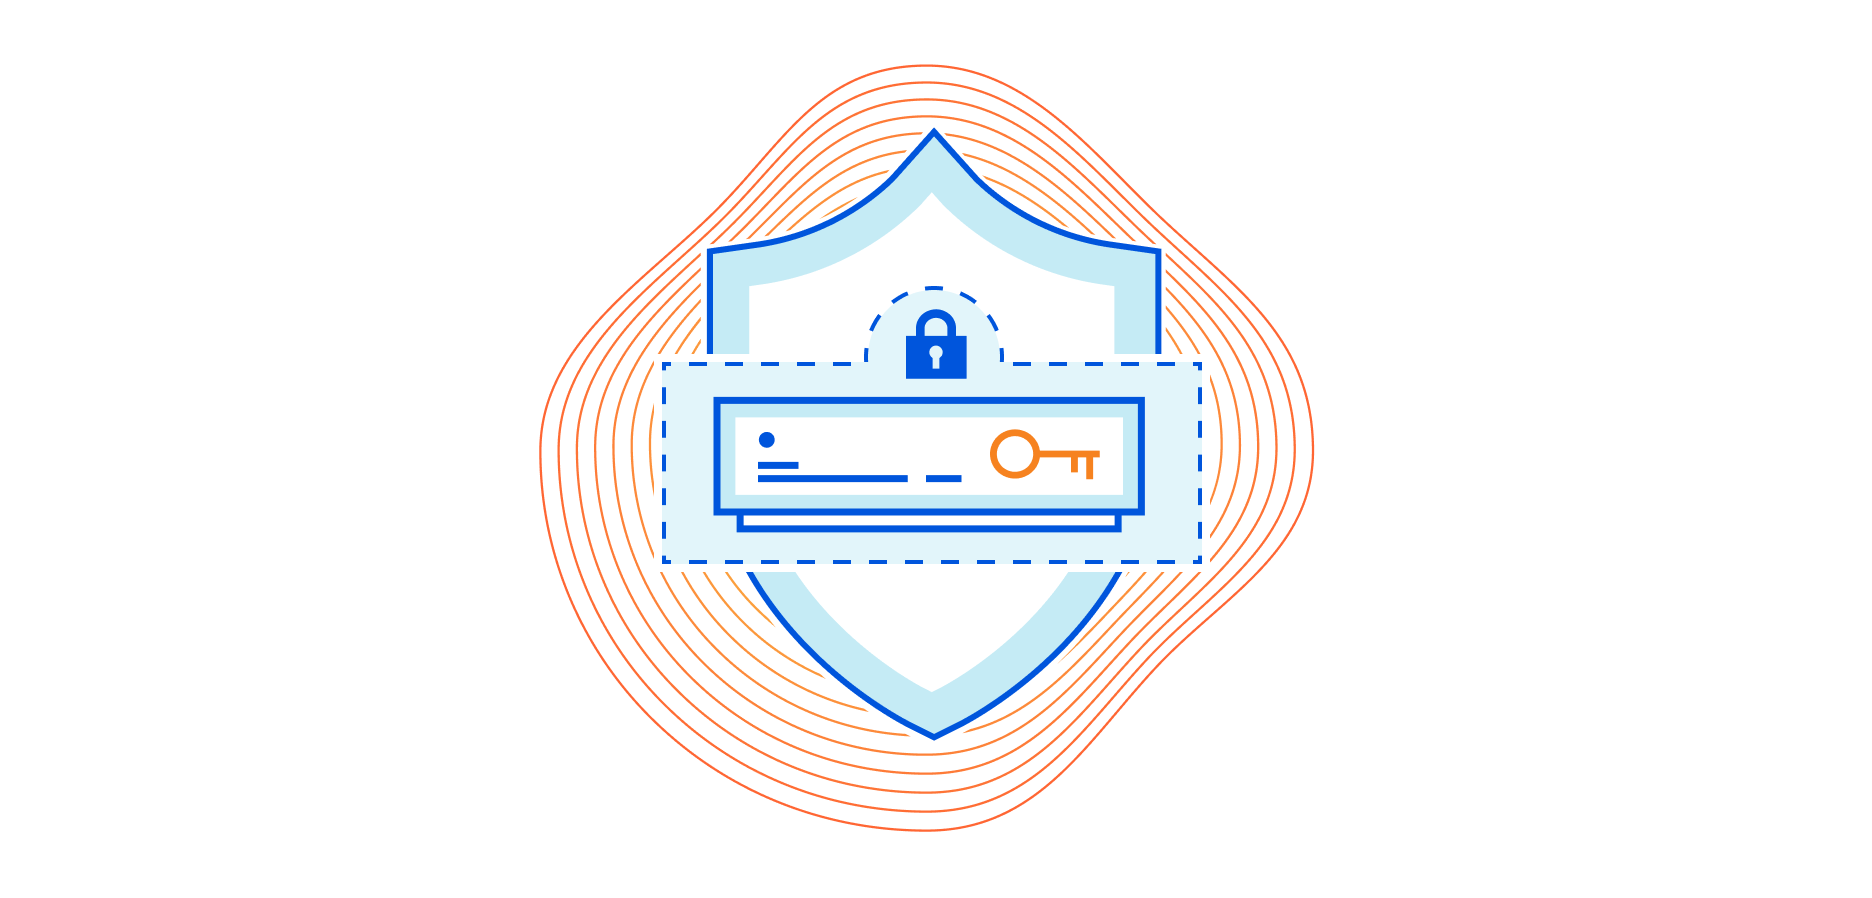 Keyless SSL now supports FIPS 140-2 L3 hardware security module (HSM) offerings from all major cloud providers